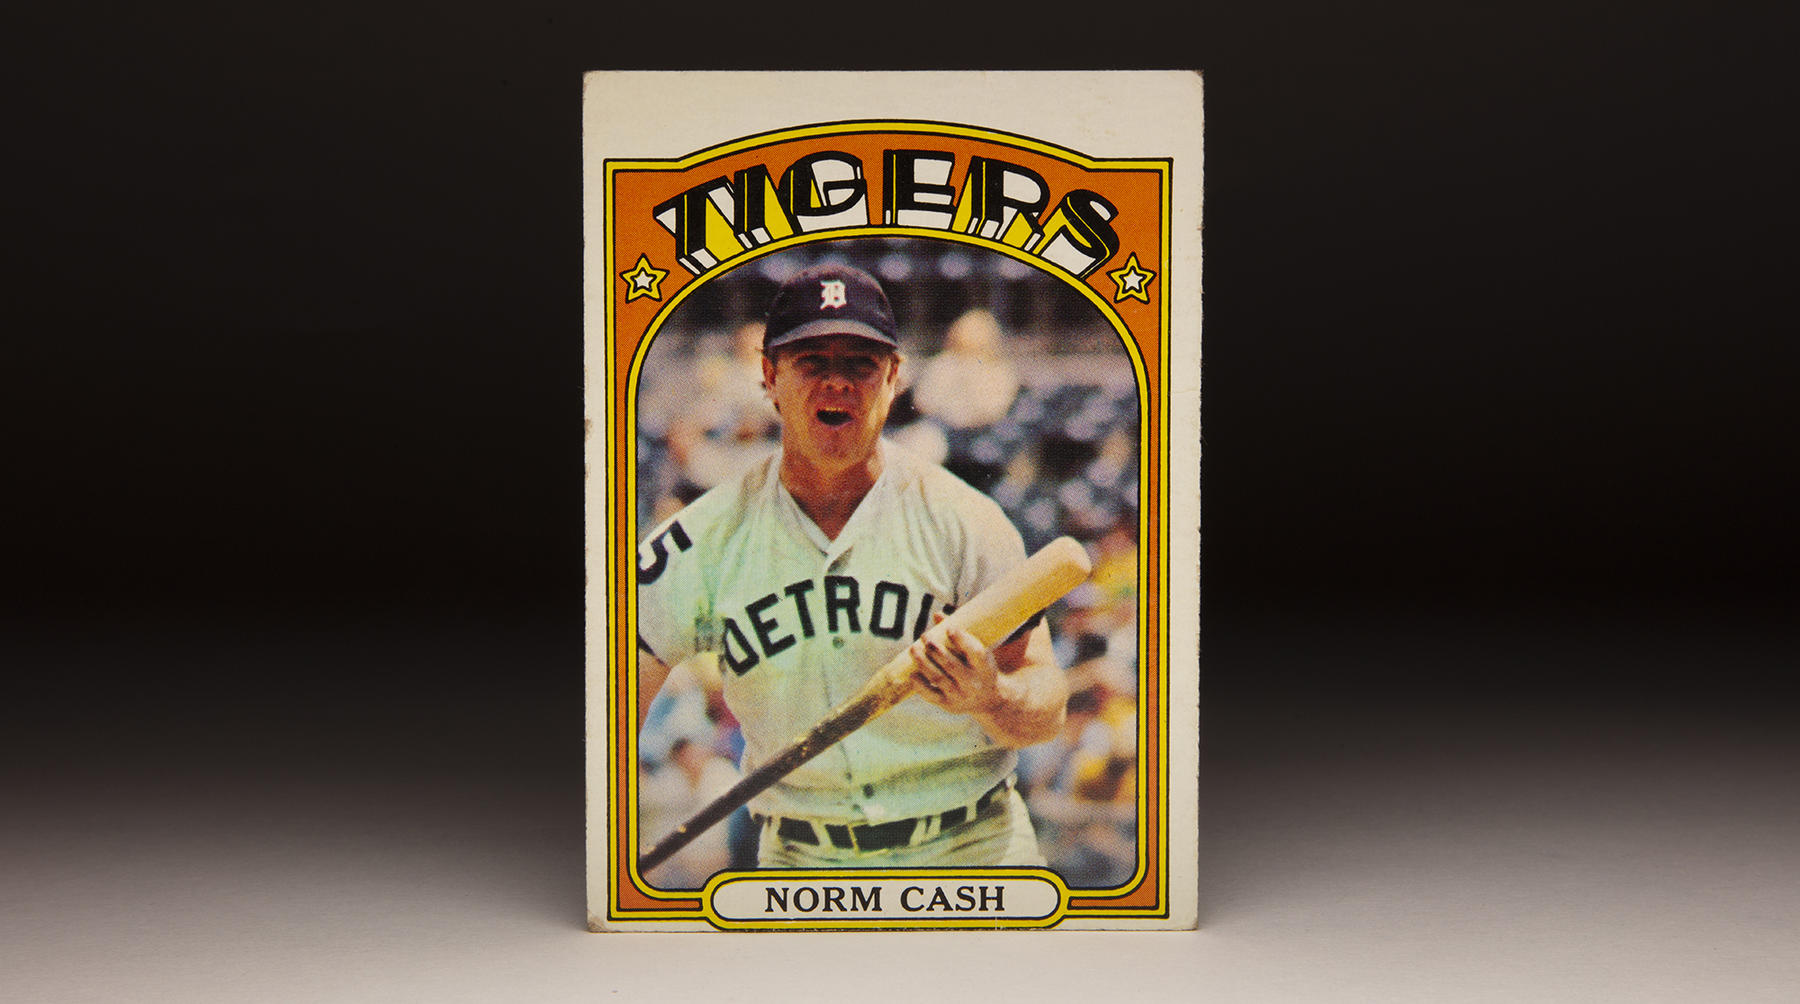 Norm Cash helped form the heart of the Detroit Tigers' lineup for 15 seasons. (Topps baseball card photographed by Milo Stewart Jr./National Baseball Hall of Fame and Museum)